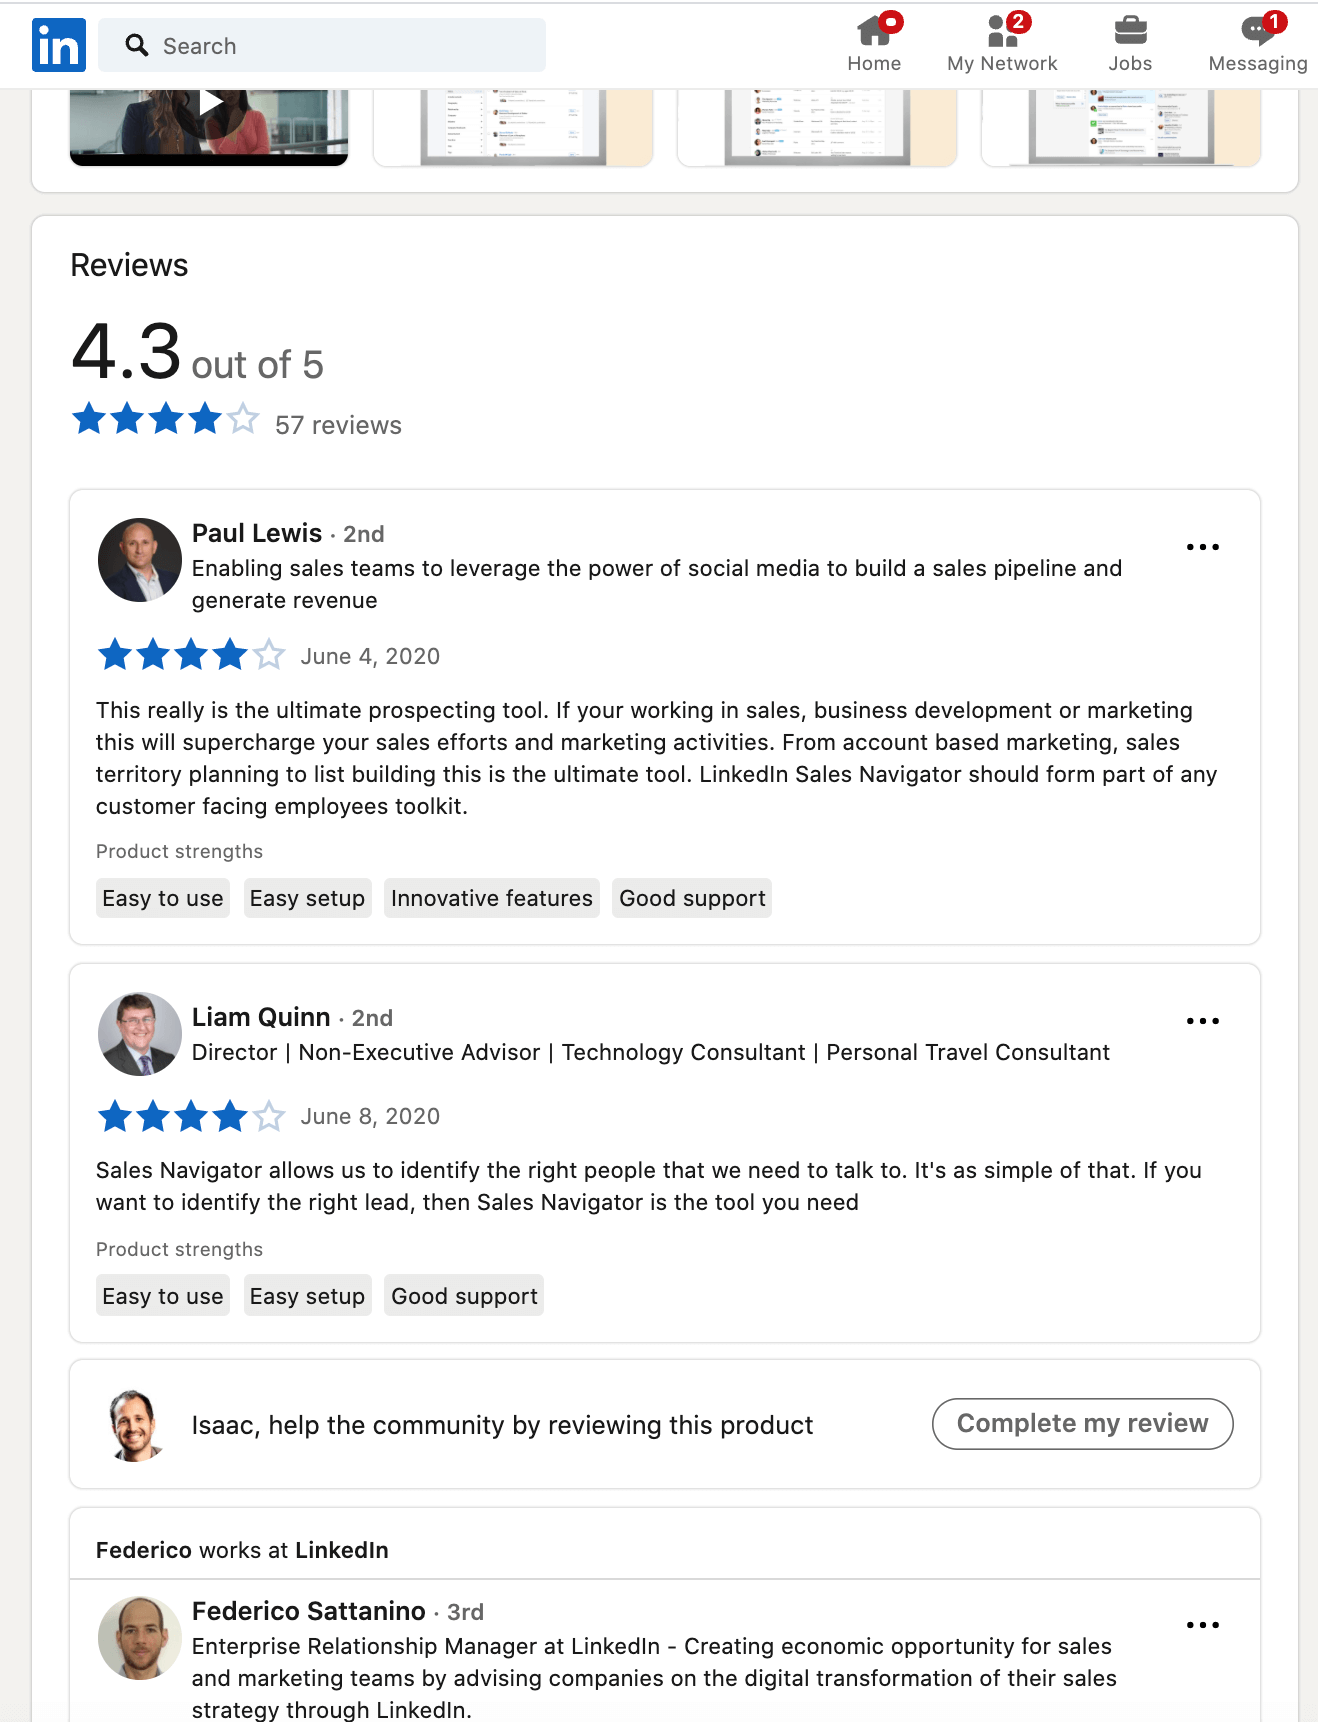 Linkedin Product Pages & Product Reviews - individual reviews